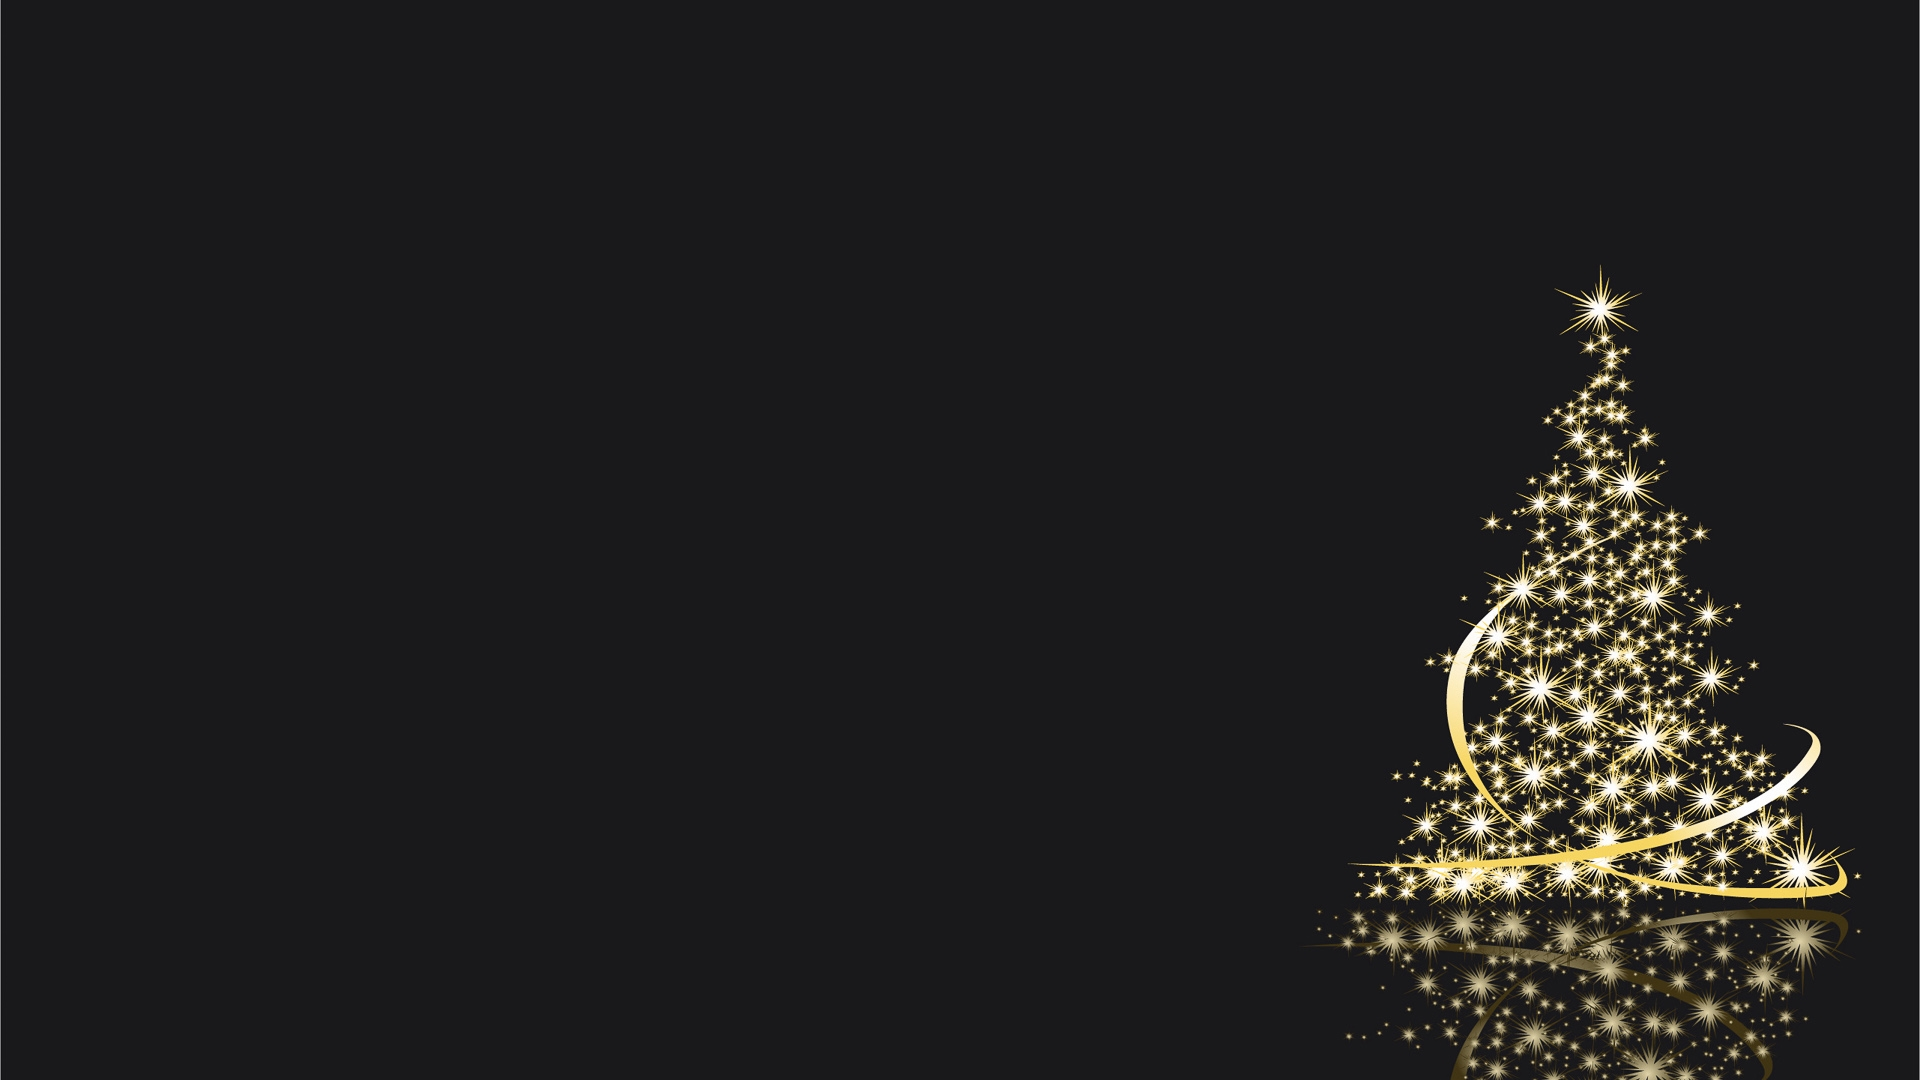 Download Wallpaper 1920x1080 Christmas Tree Lights New